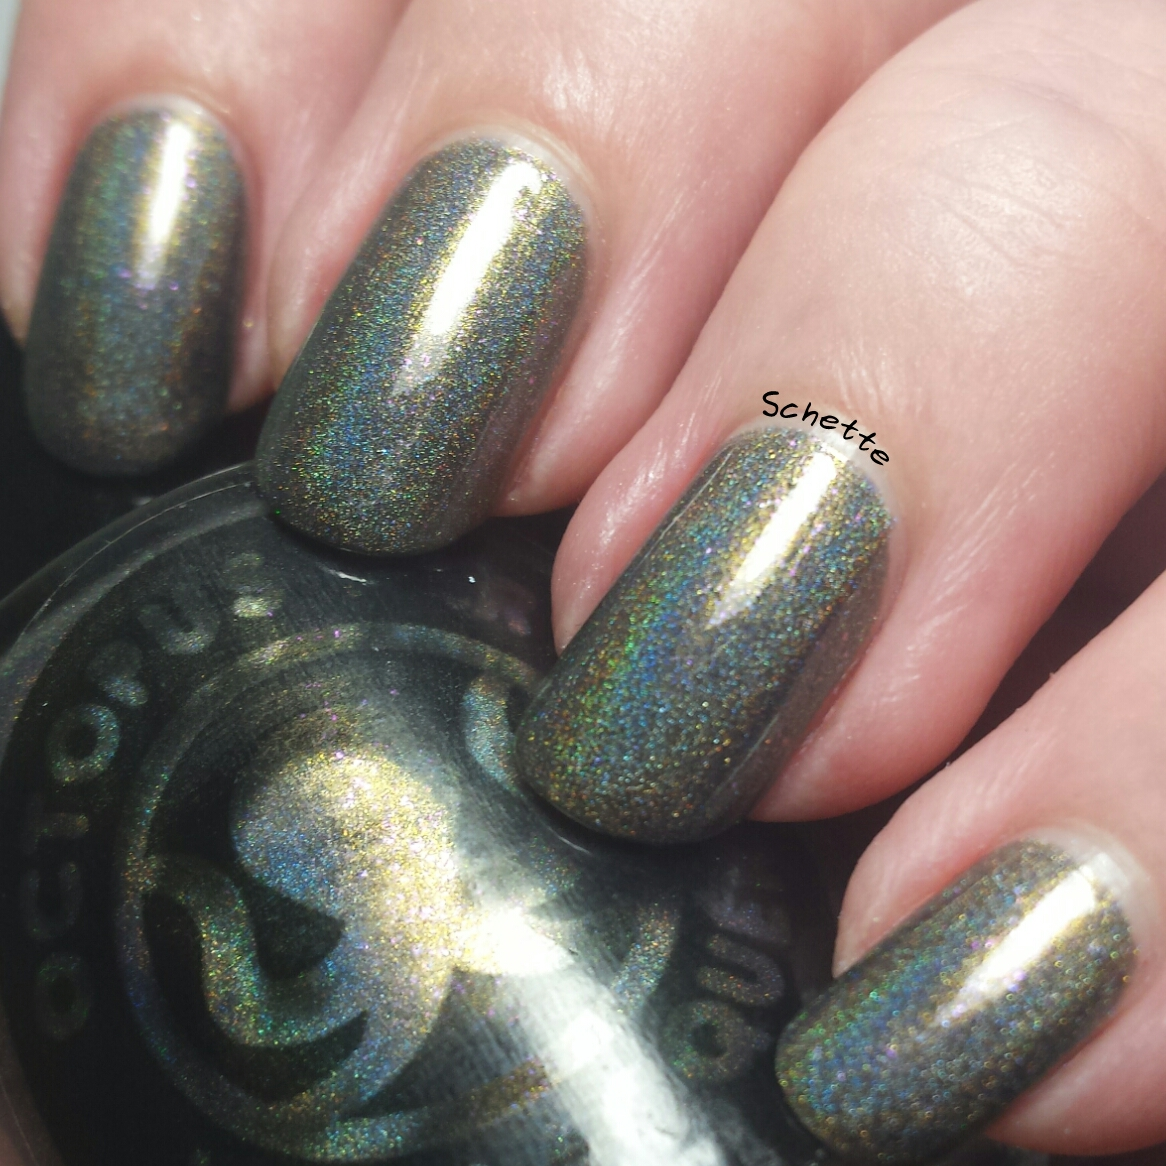 Octopus Party Nail Lacquer - Death and taxes